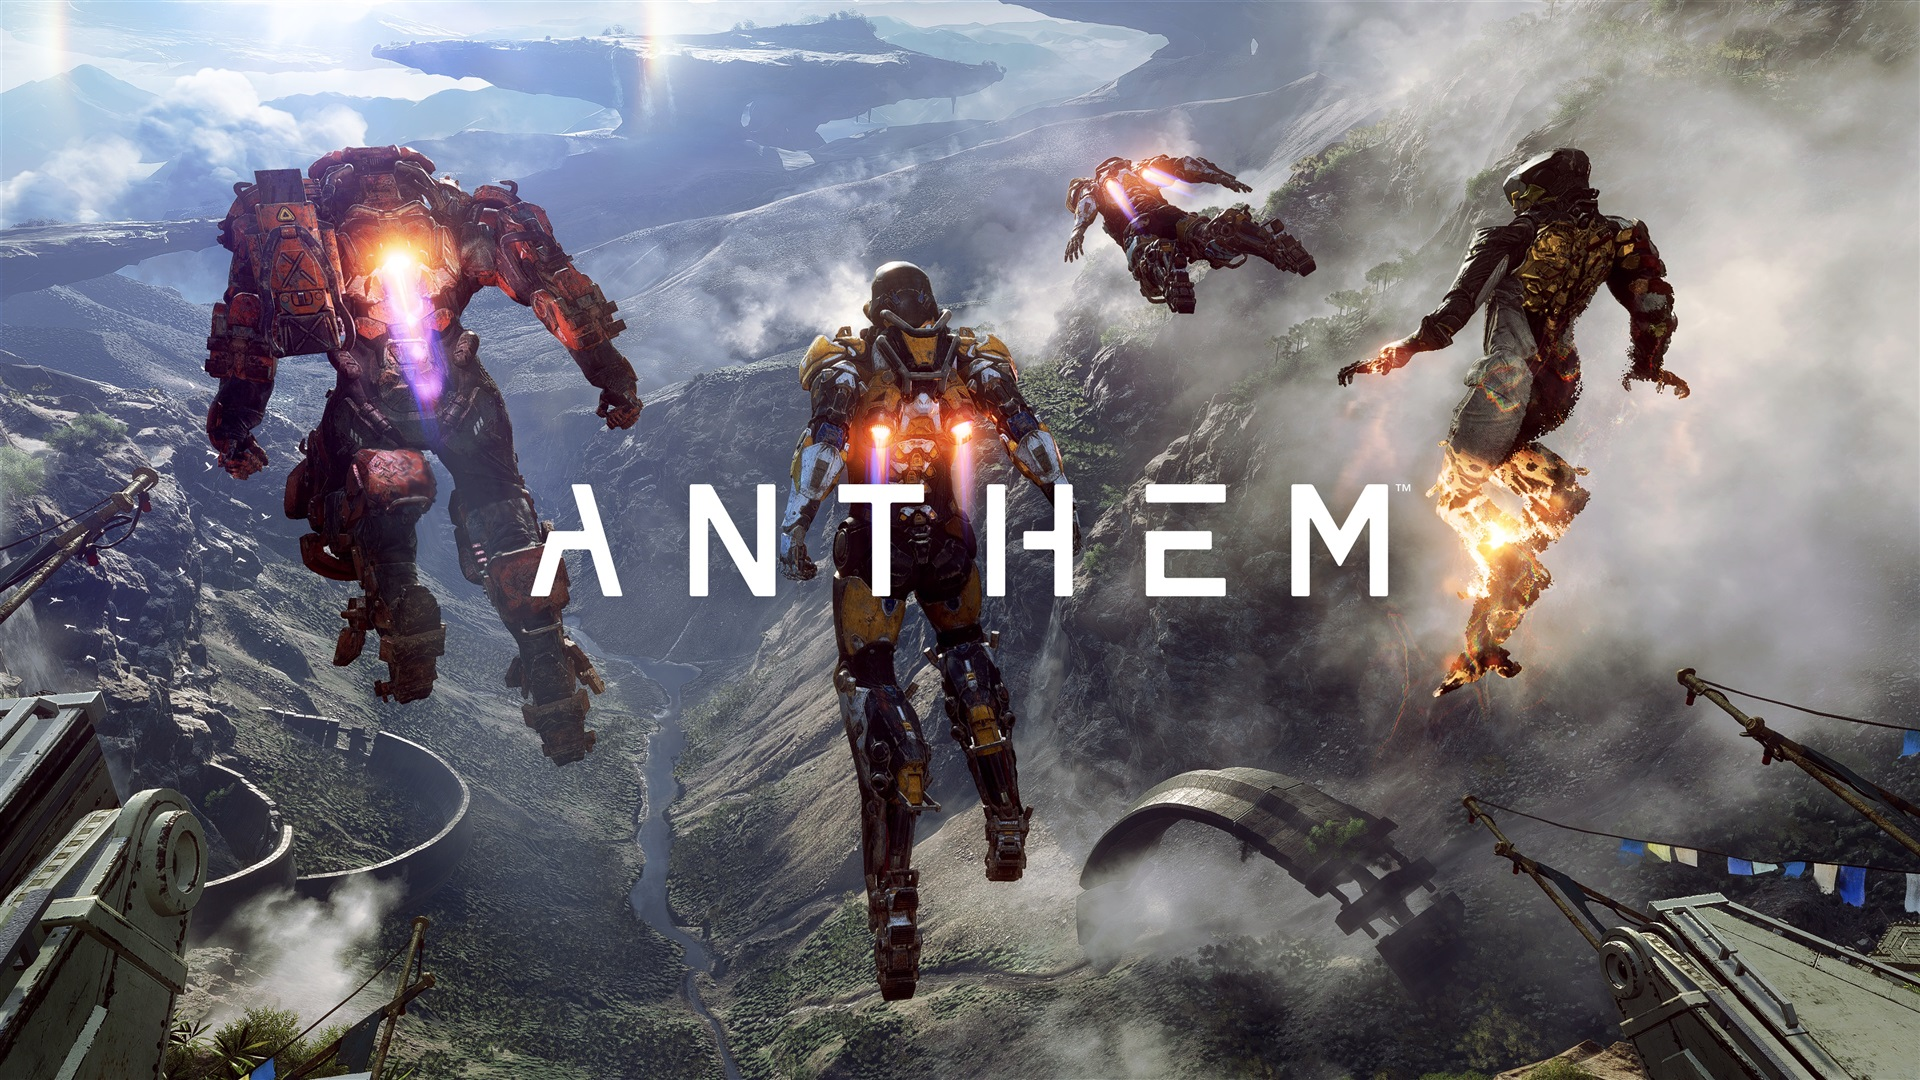 Wallpaper Anthem, Video Game, Robot, Action To Flying -3126